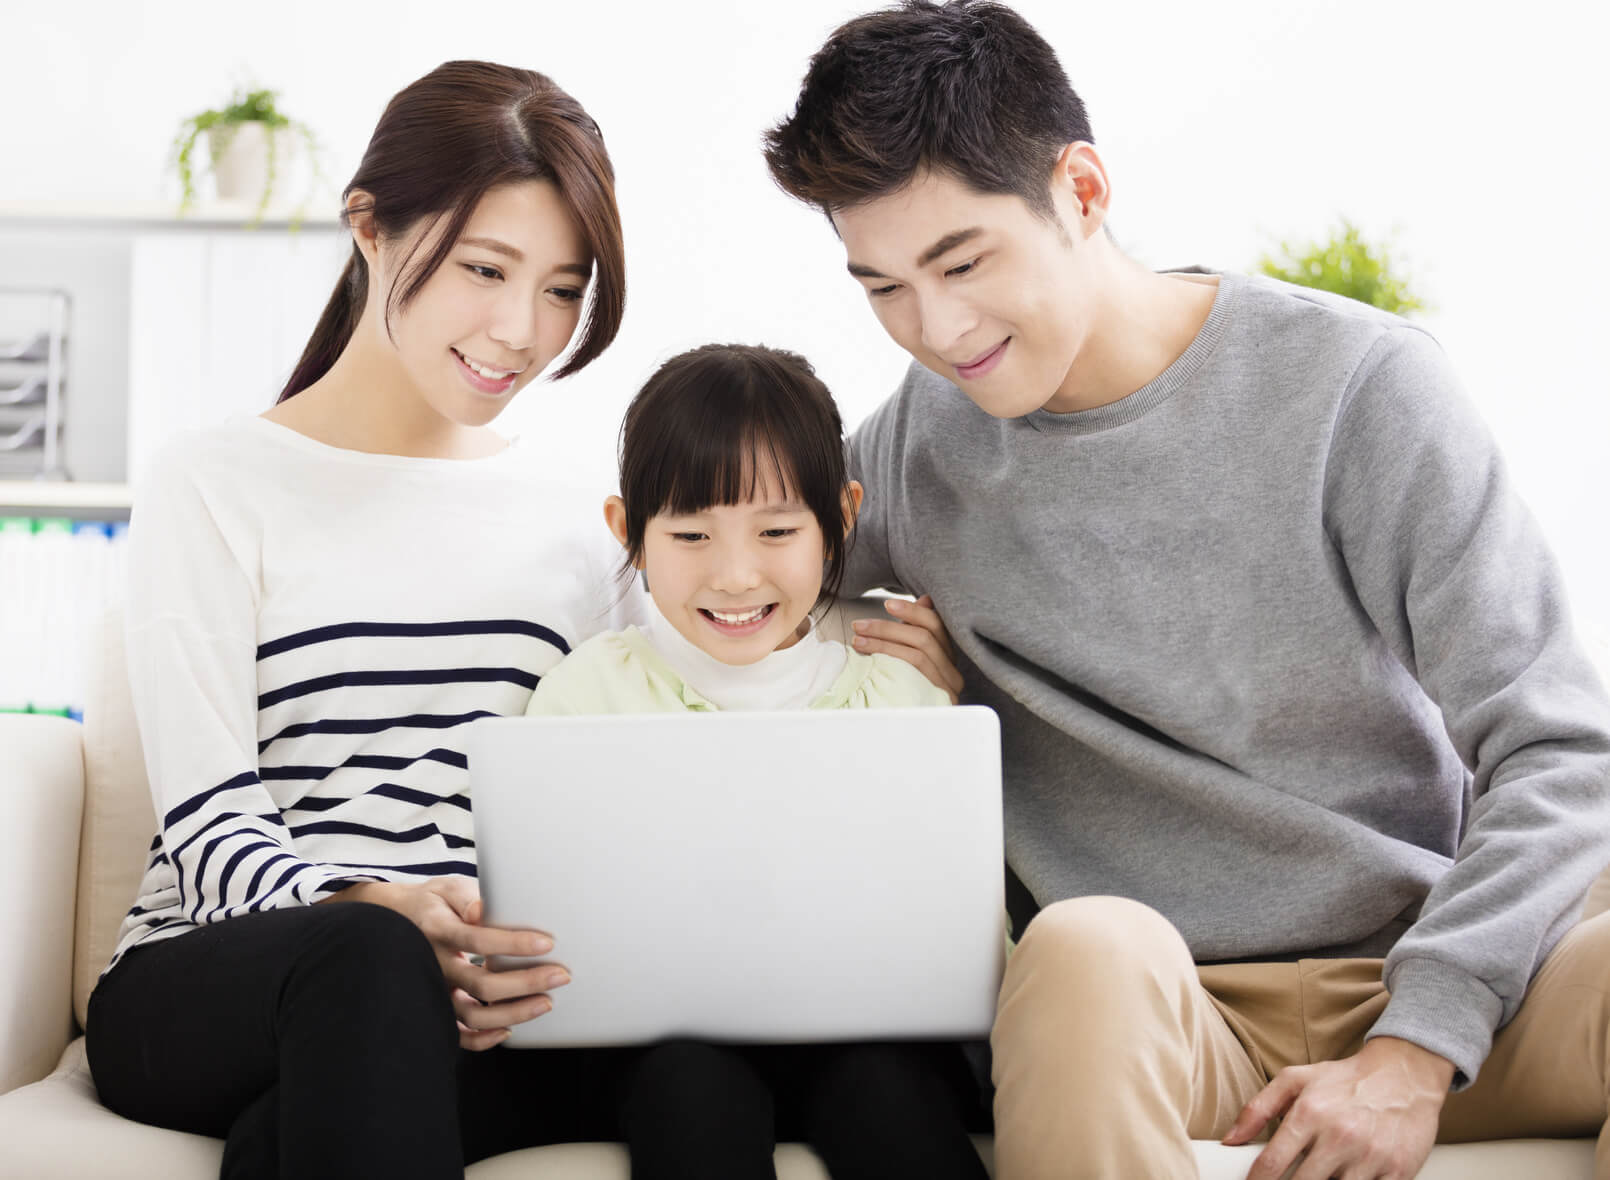 primary education 6 essay The essay also depicts each of the subsystems that comprise the nes and   primary education includes children 6-11 years old, who represent 997% of the .